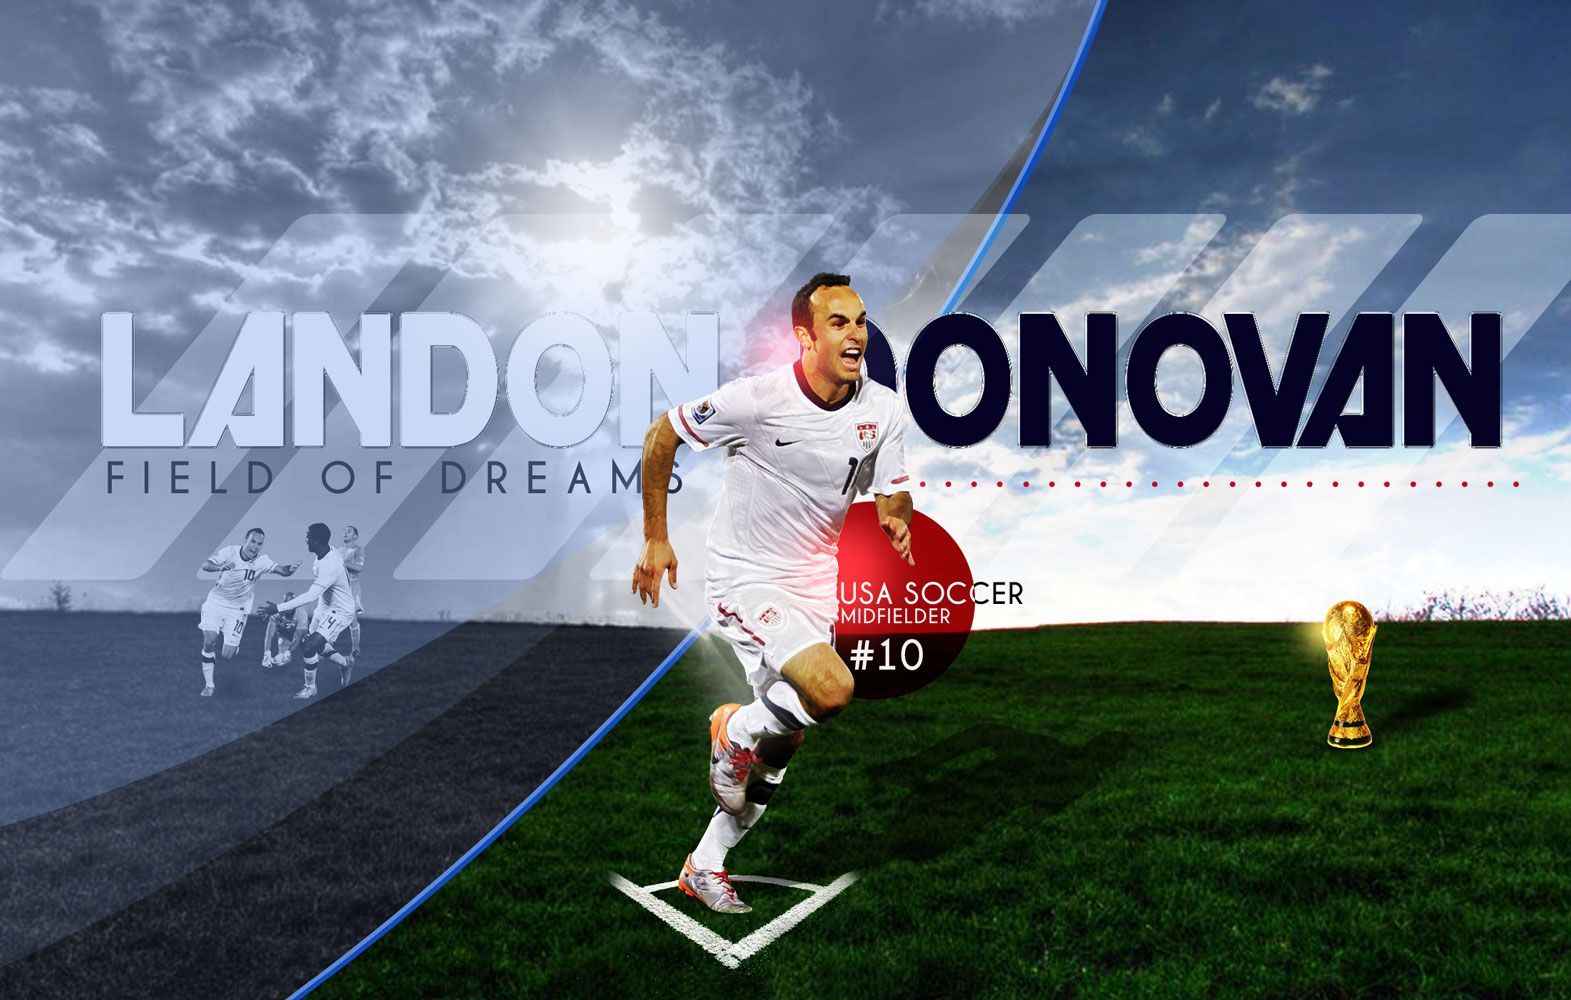 Landon_Donovan_Usa_Wallpaper.jpg?m=1324237614